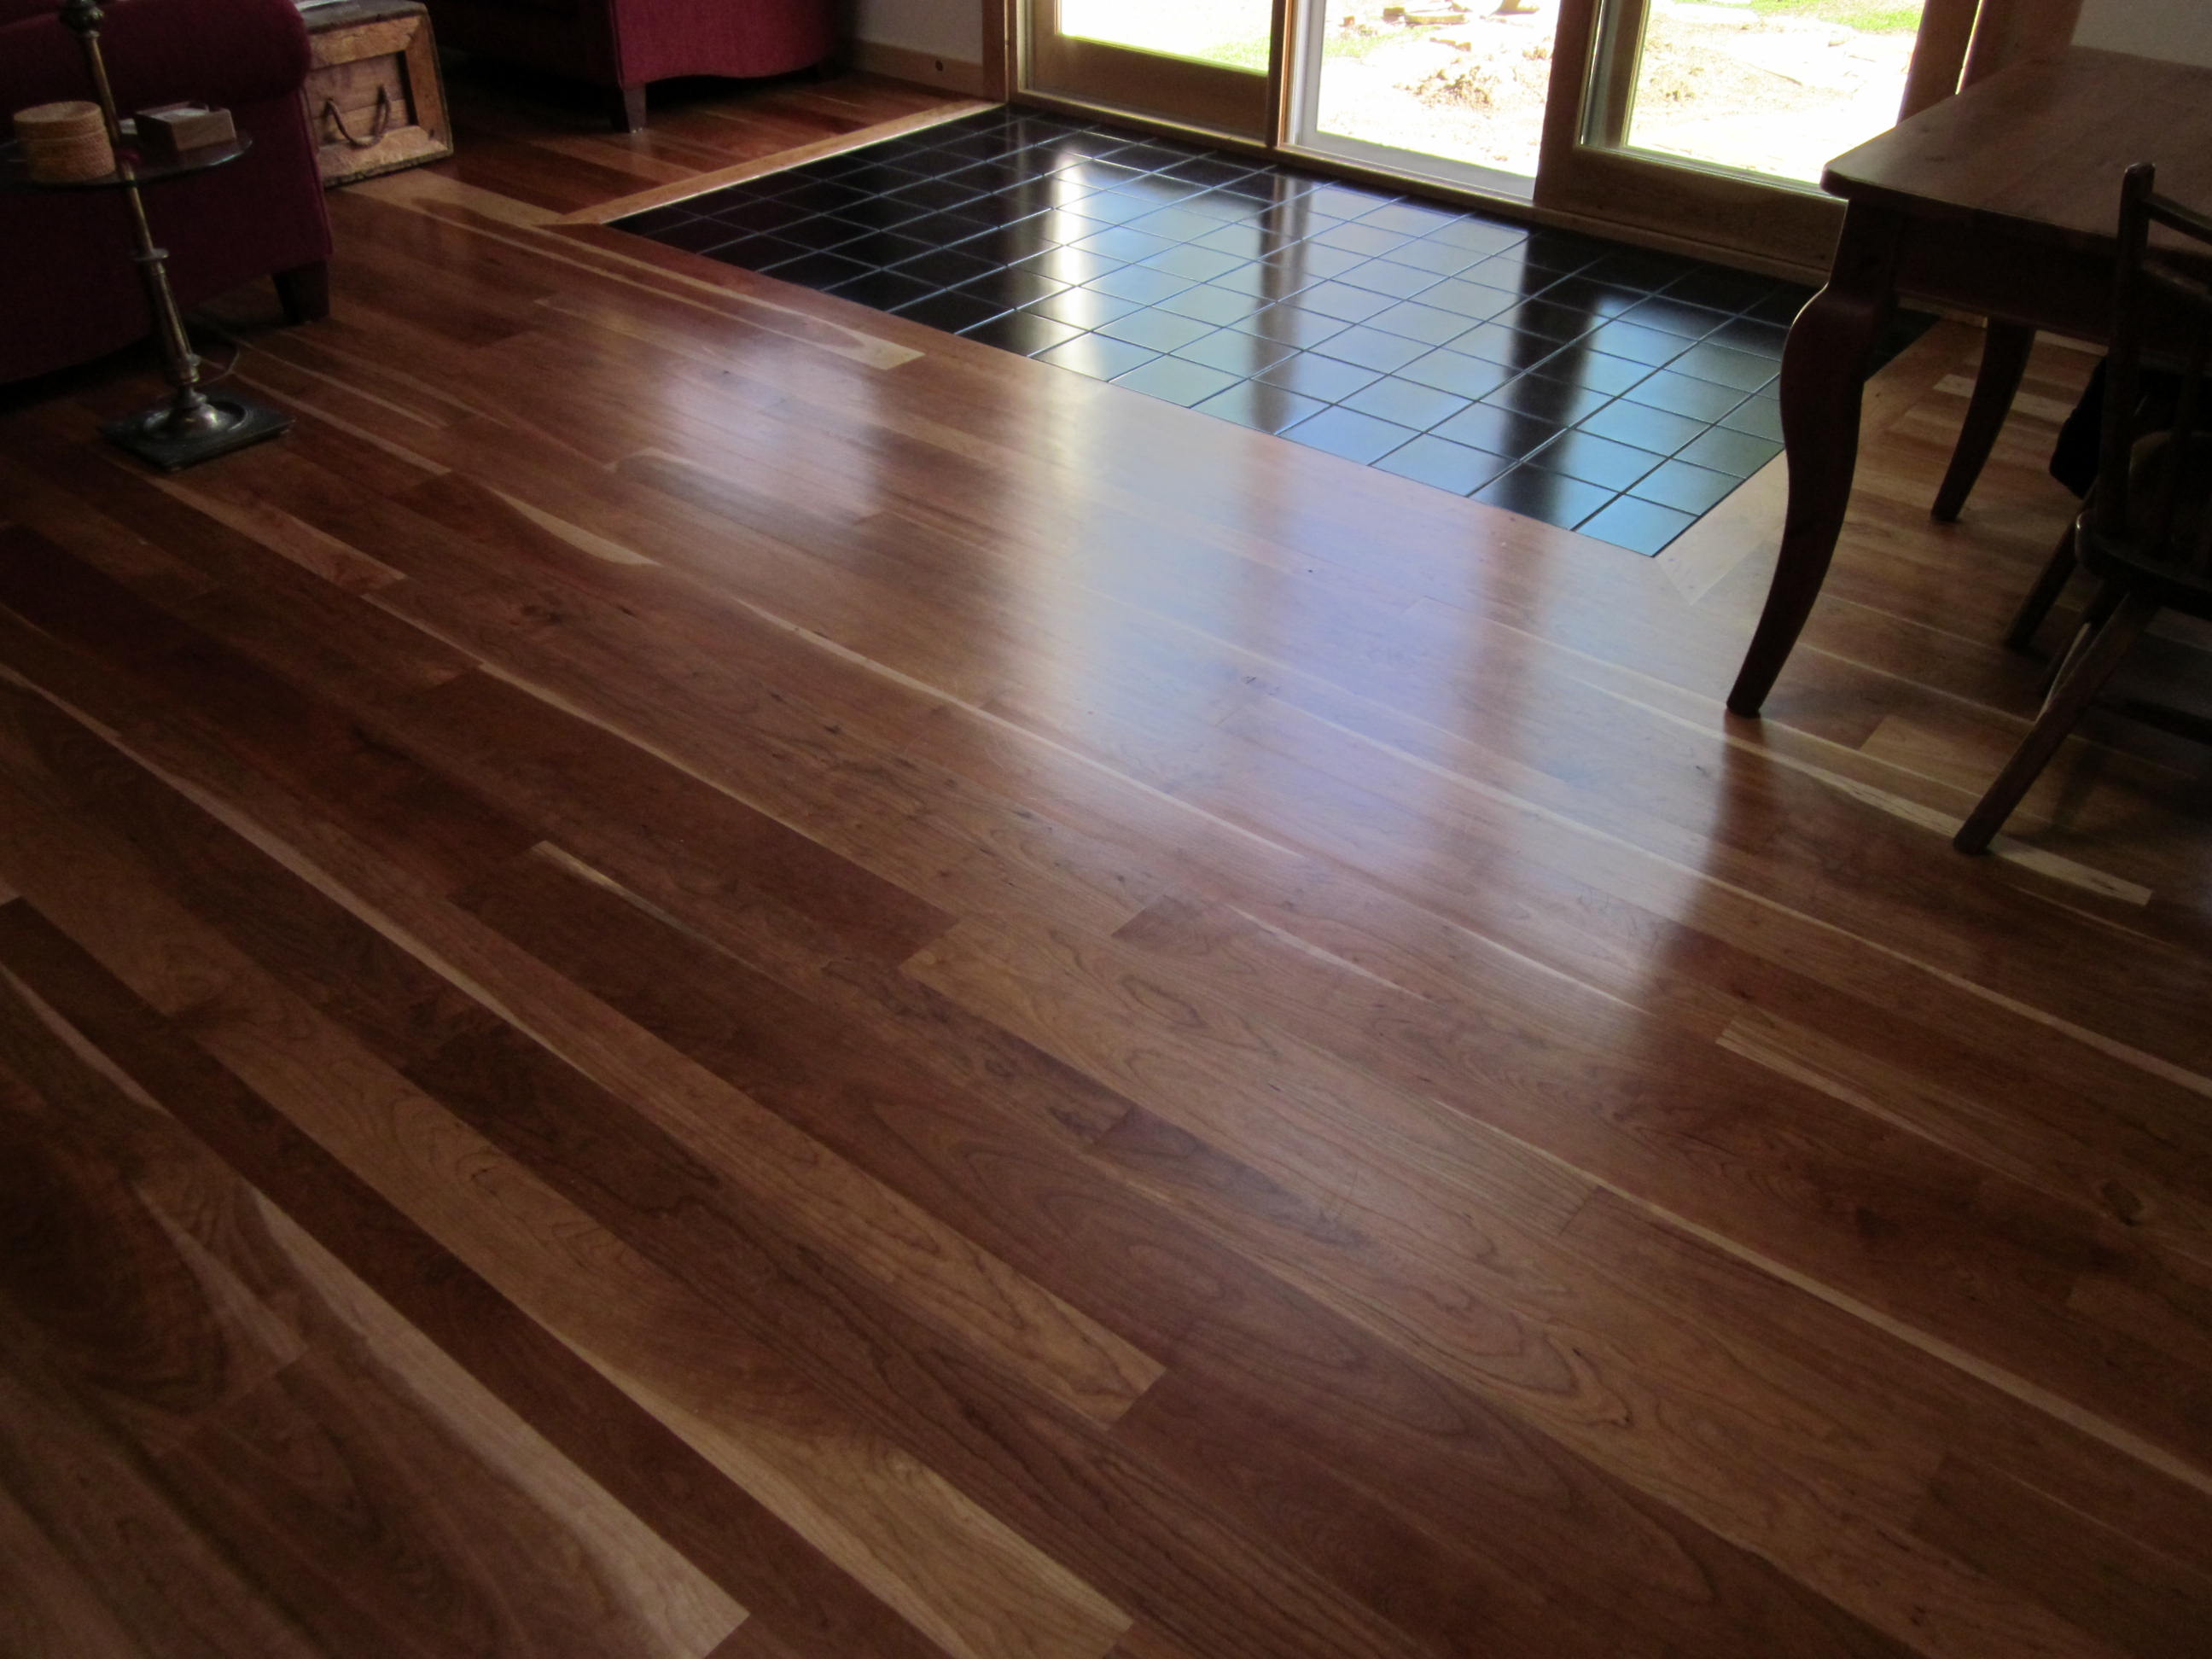 Kerber farms lumber company coupons near me in guilford for Wood flooring near me